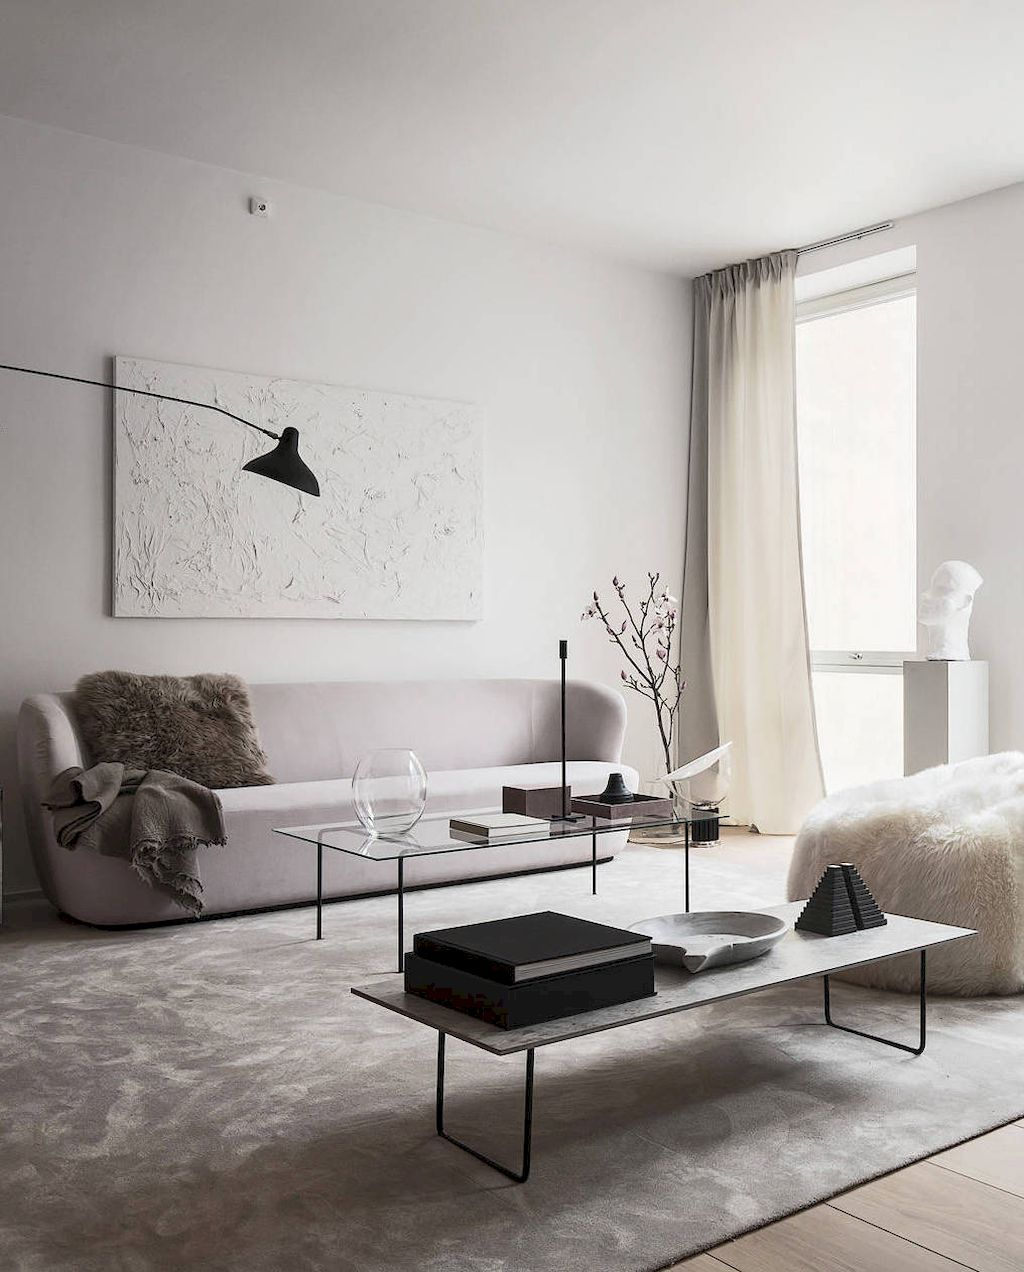 50 Minimalist Living Room Decoration Ideas | Minimalist, Living ...